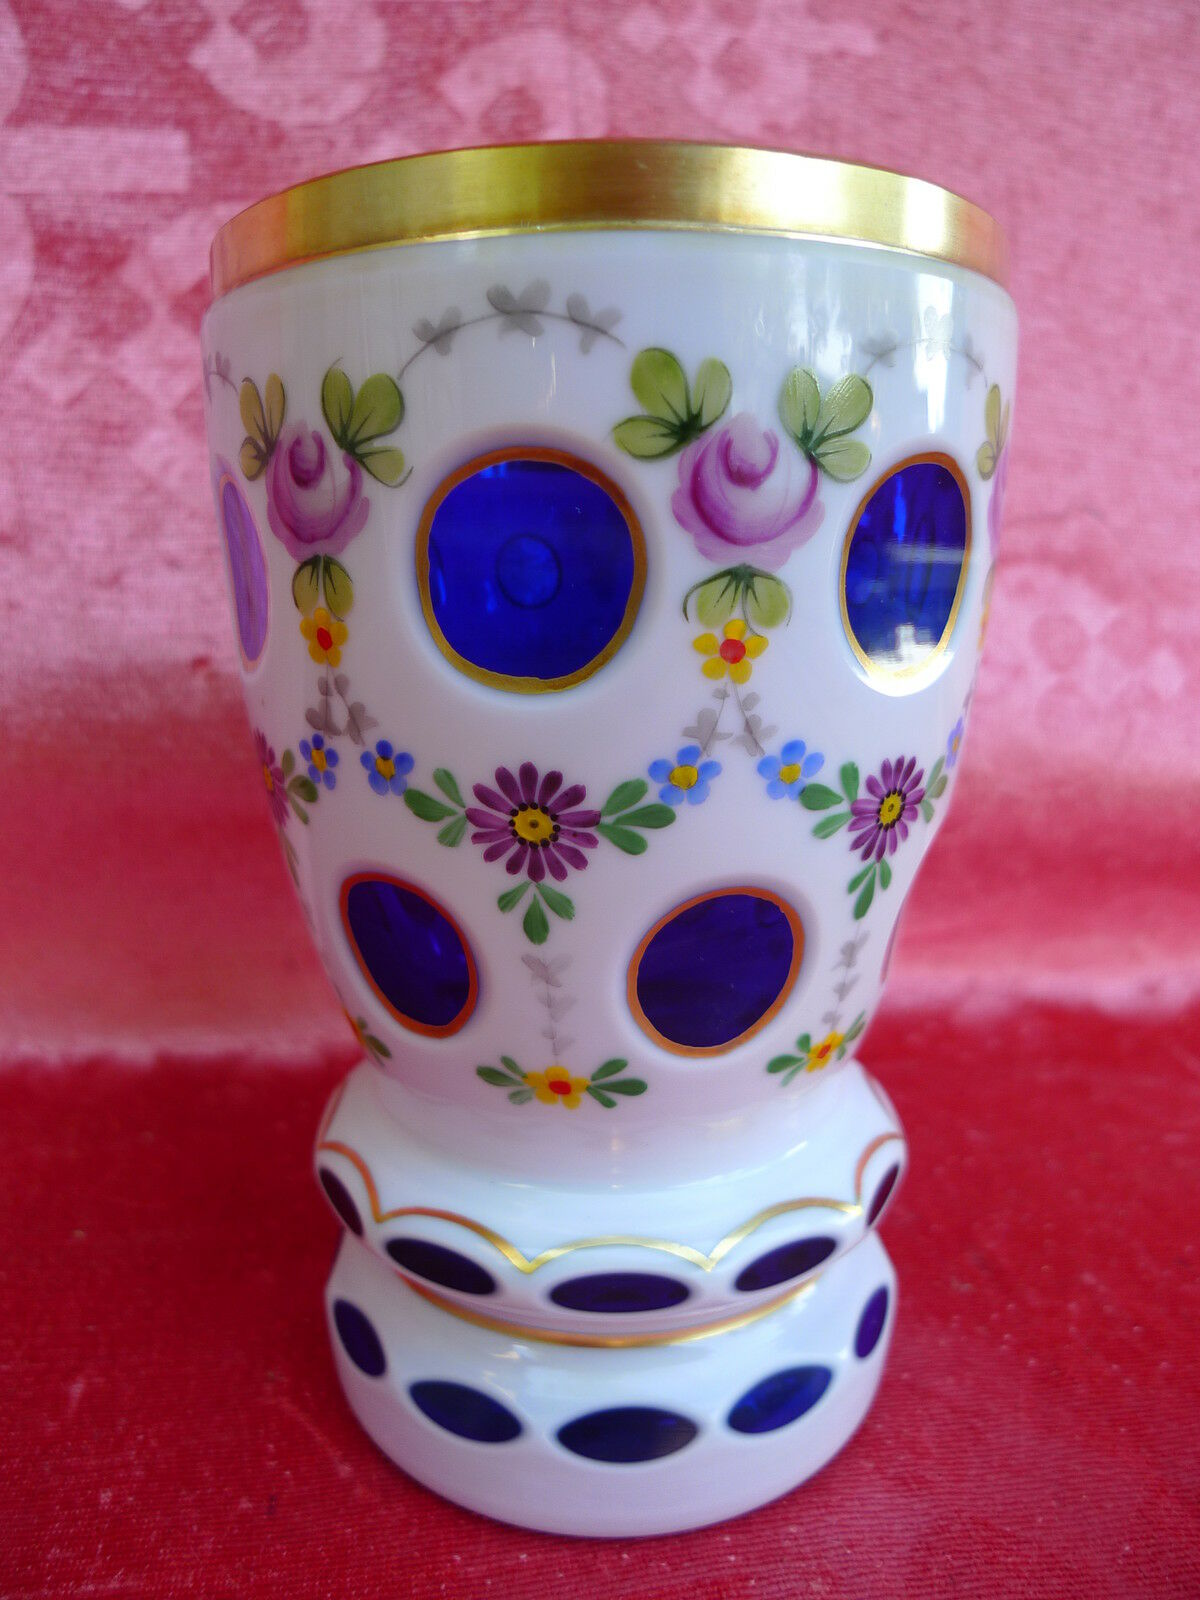 Belle kristall-becher __ chalice __ hand painted __ 14, 5cm __